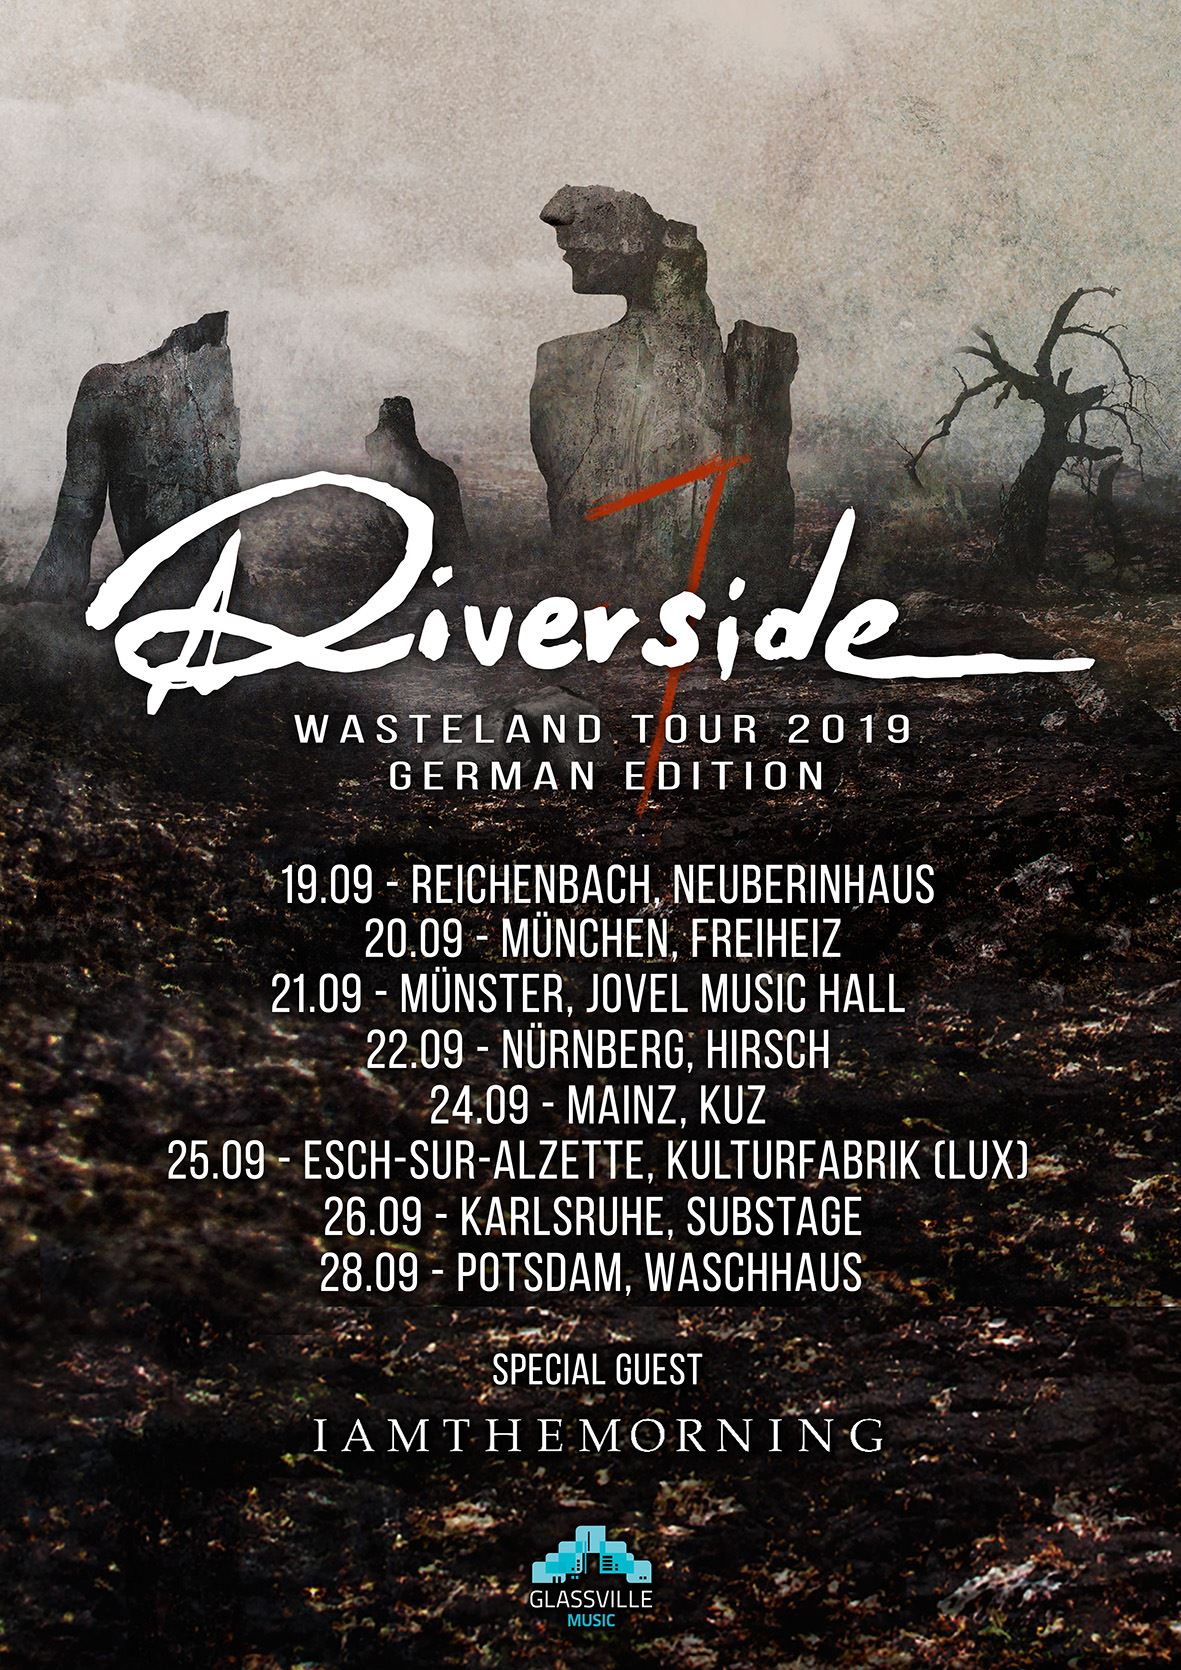 Wasteland Tour - German Edition 2019